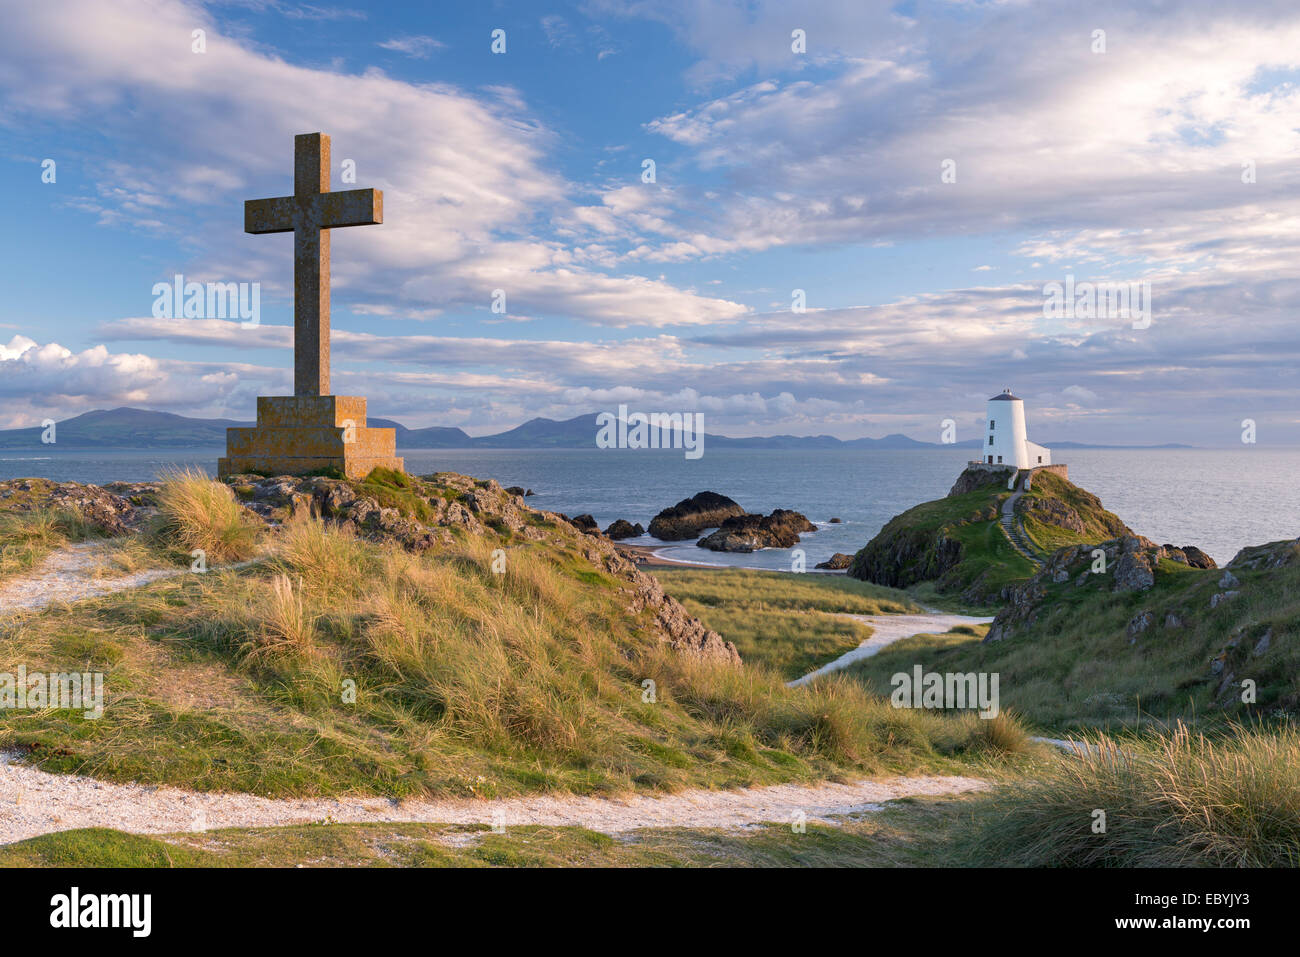 Cross and lighthouse on Llanddwyn Island, Anglesey, Wales. Autumn (September) 2013. - Stock Image